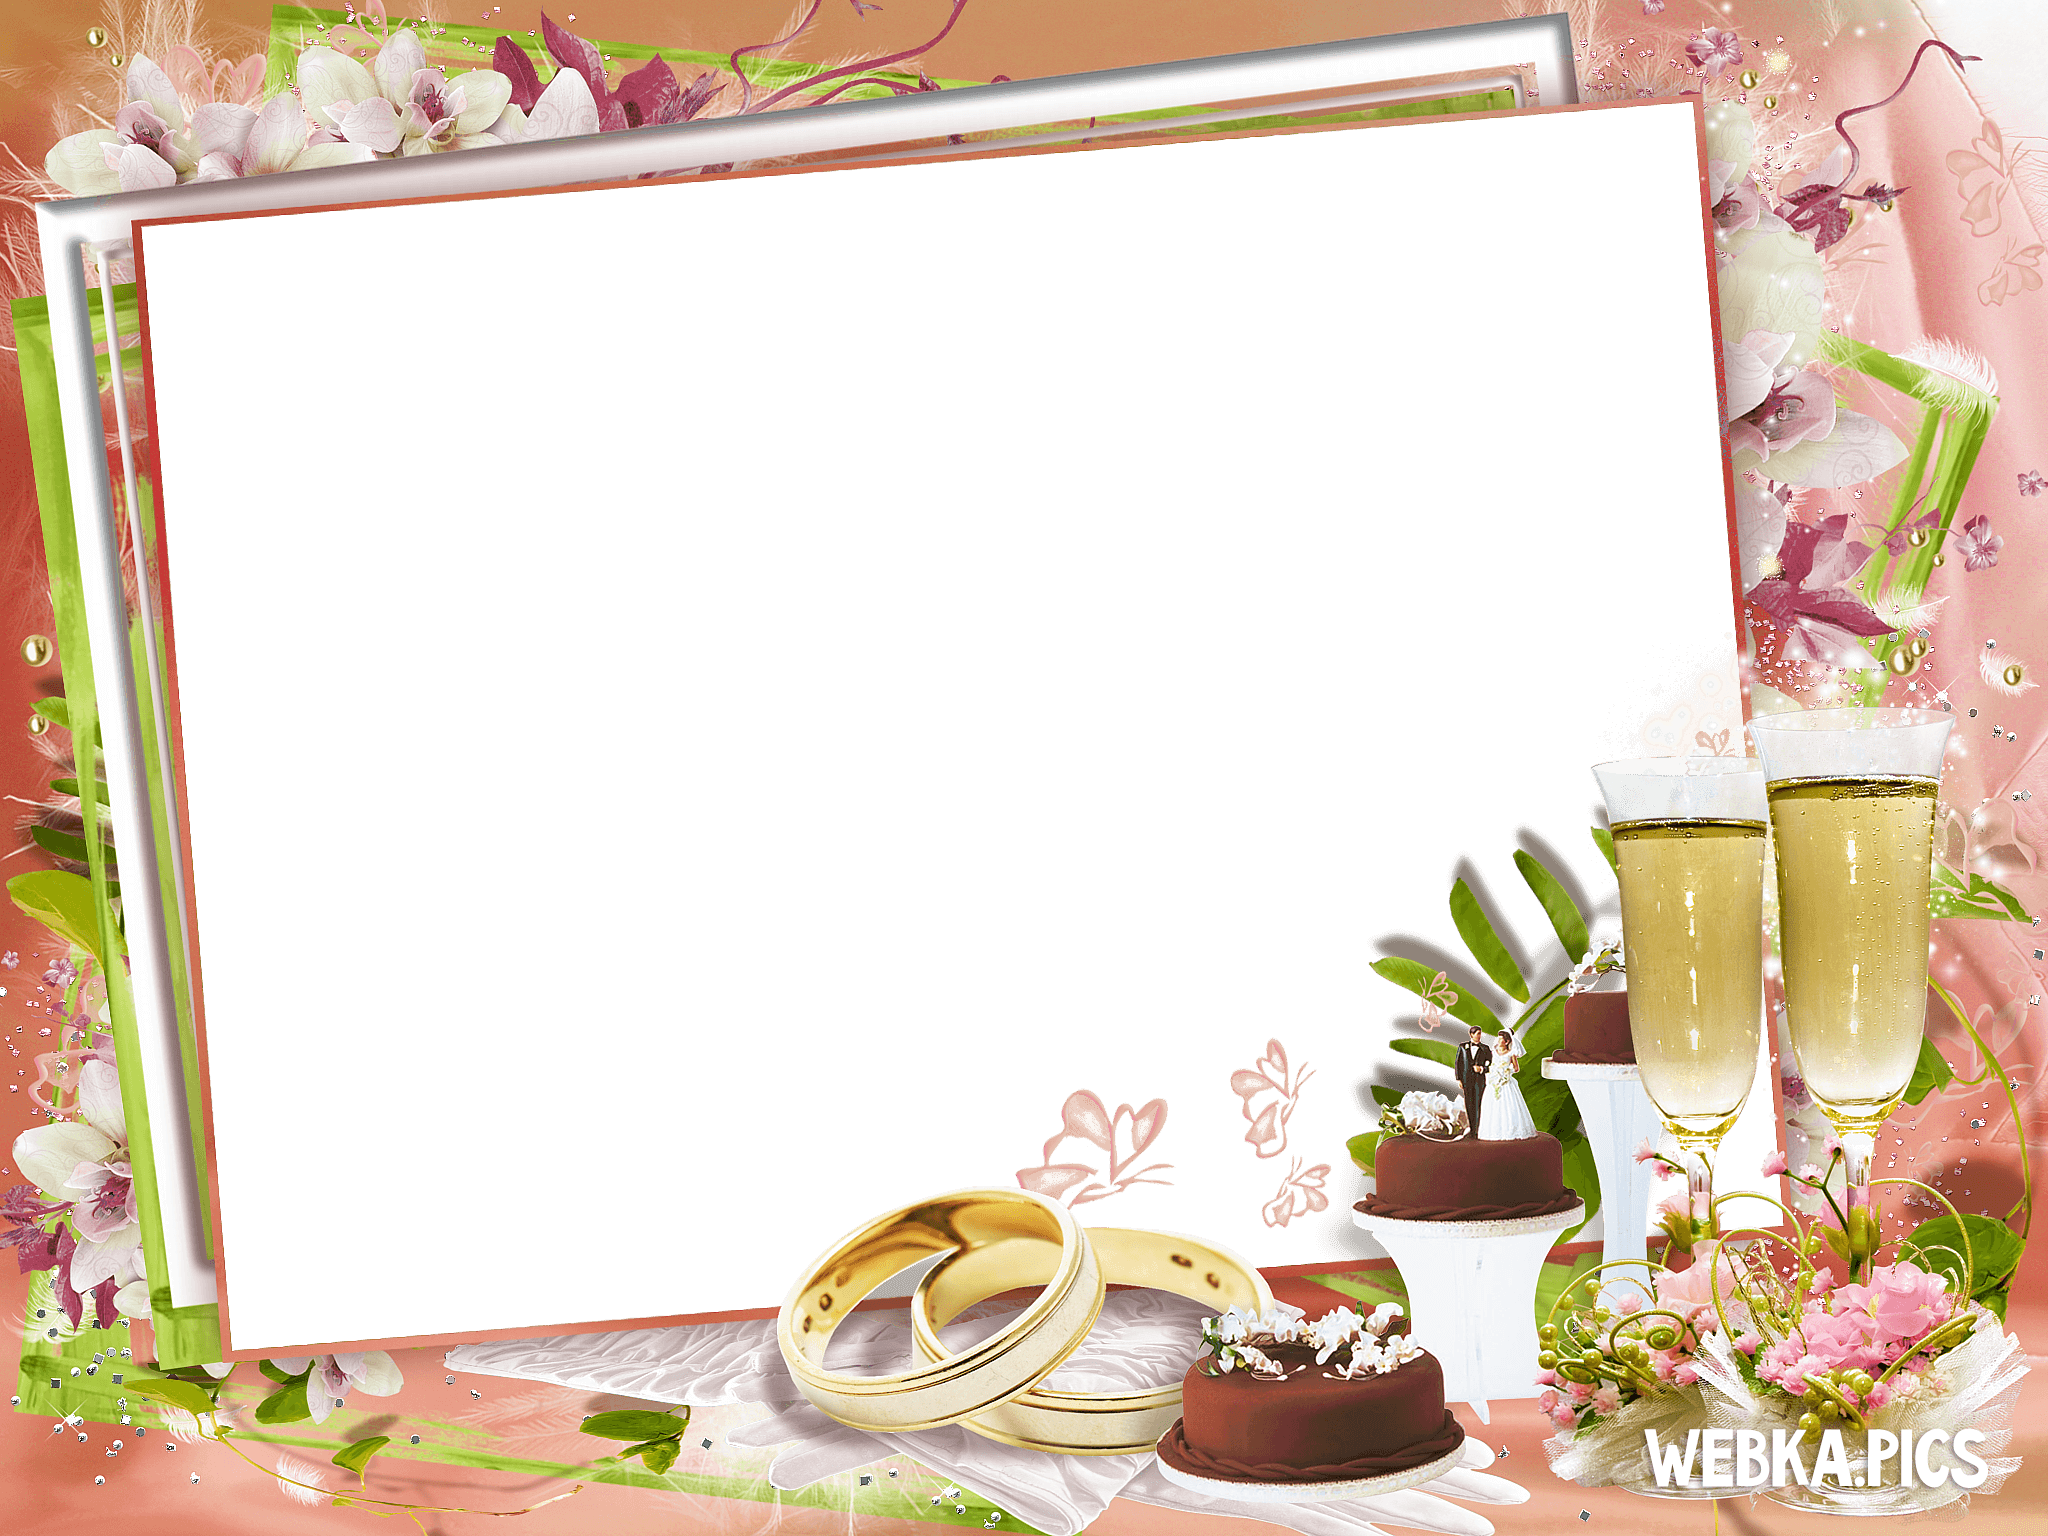 png picture wedding frame image happy wedding anniversary frame png 2048x1536 png clipart download png picture wedding frame image happy